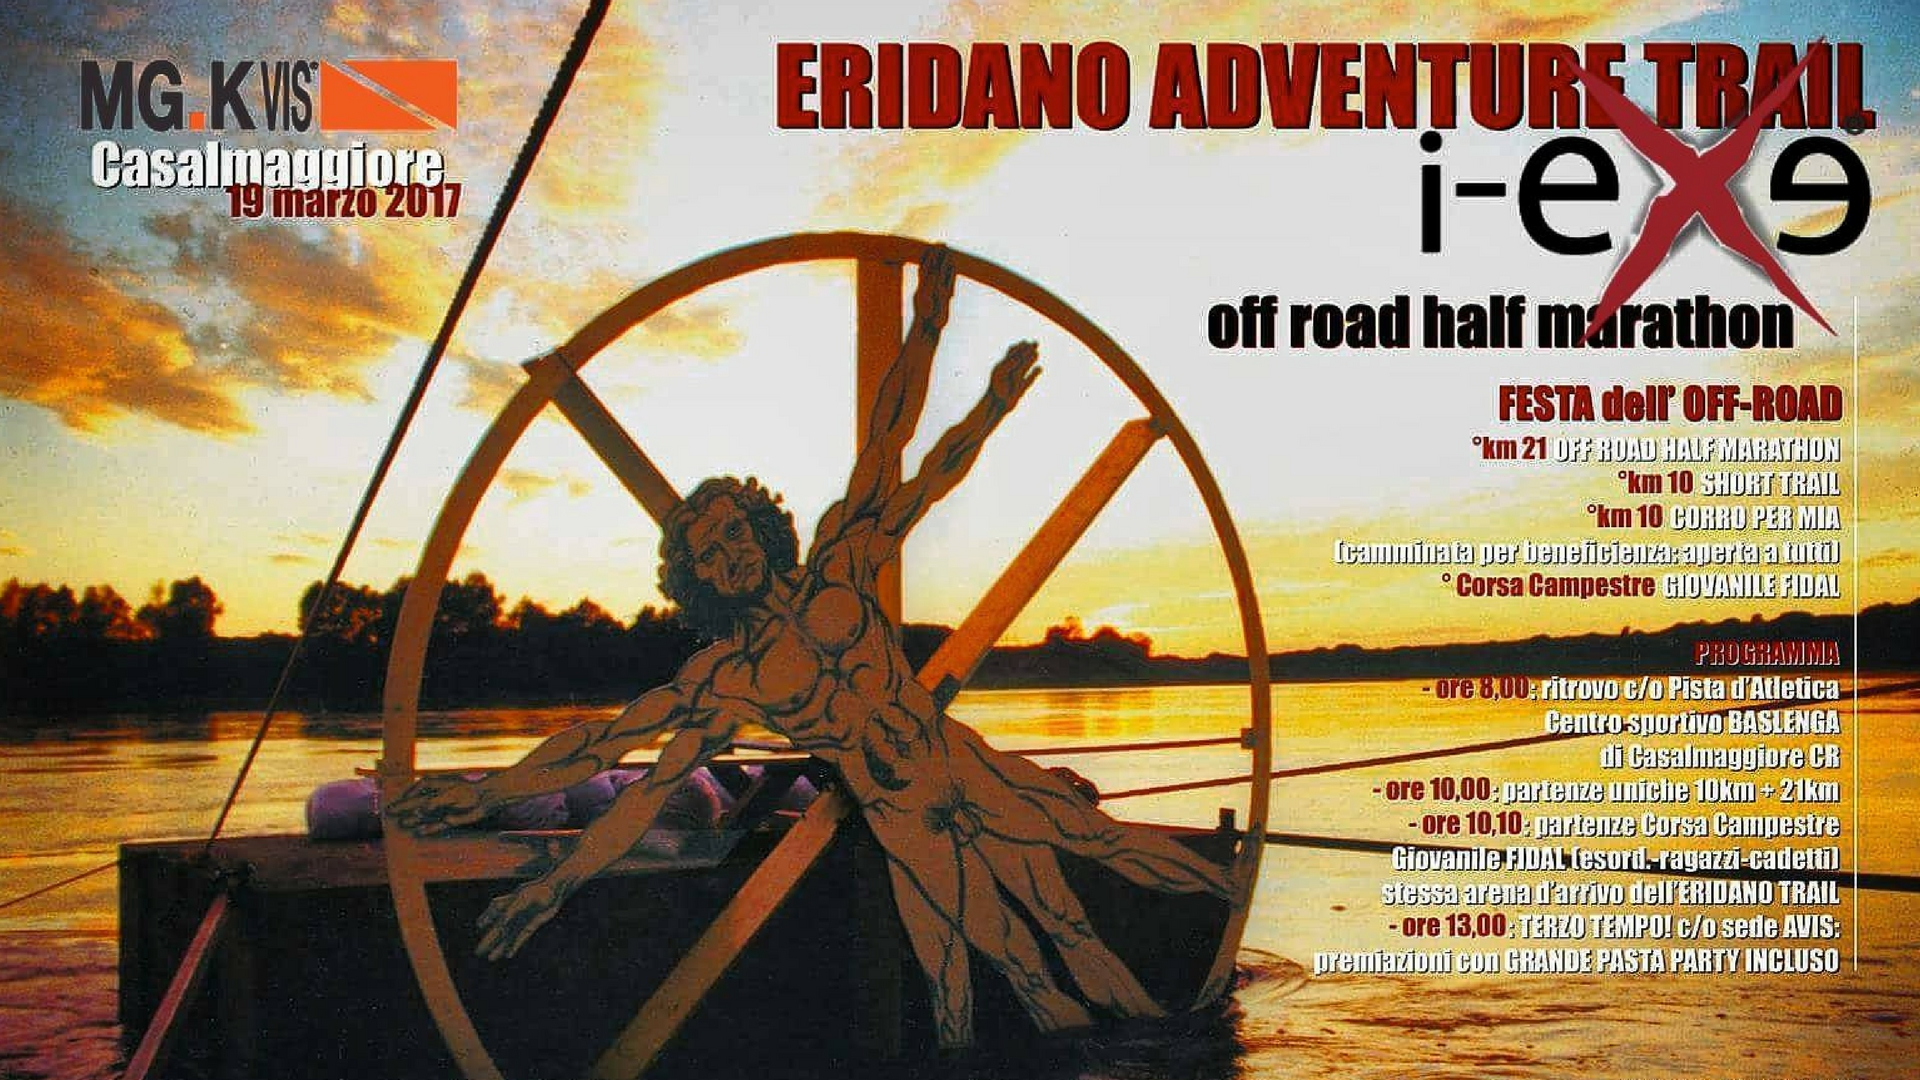 Festa dell'Off-Road – Eridano Adventure Trail